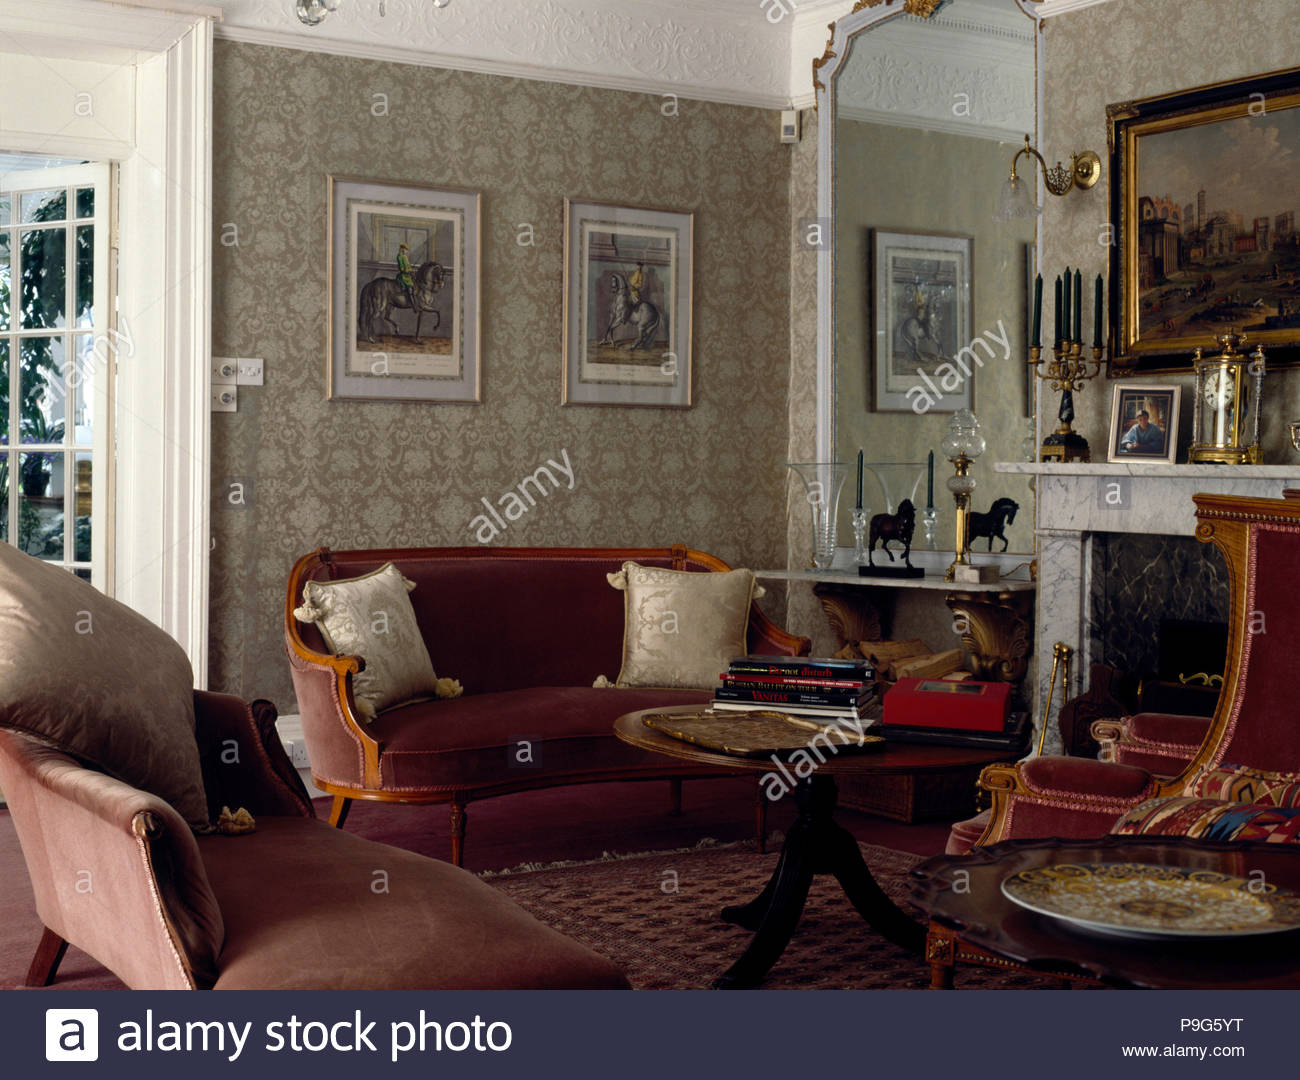 Velvet upholstered sofas in an old fashioned living room with pale 1300x1080